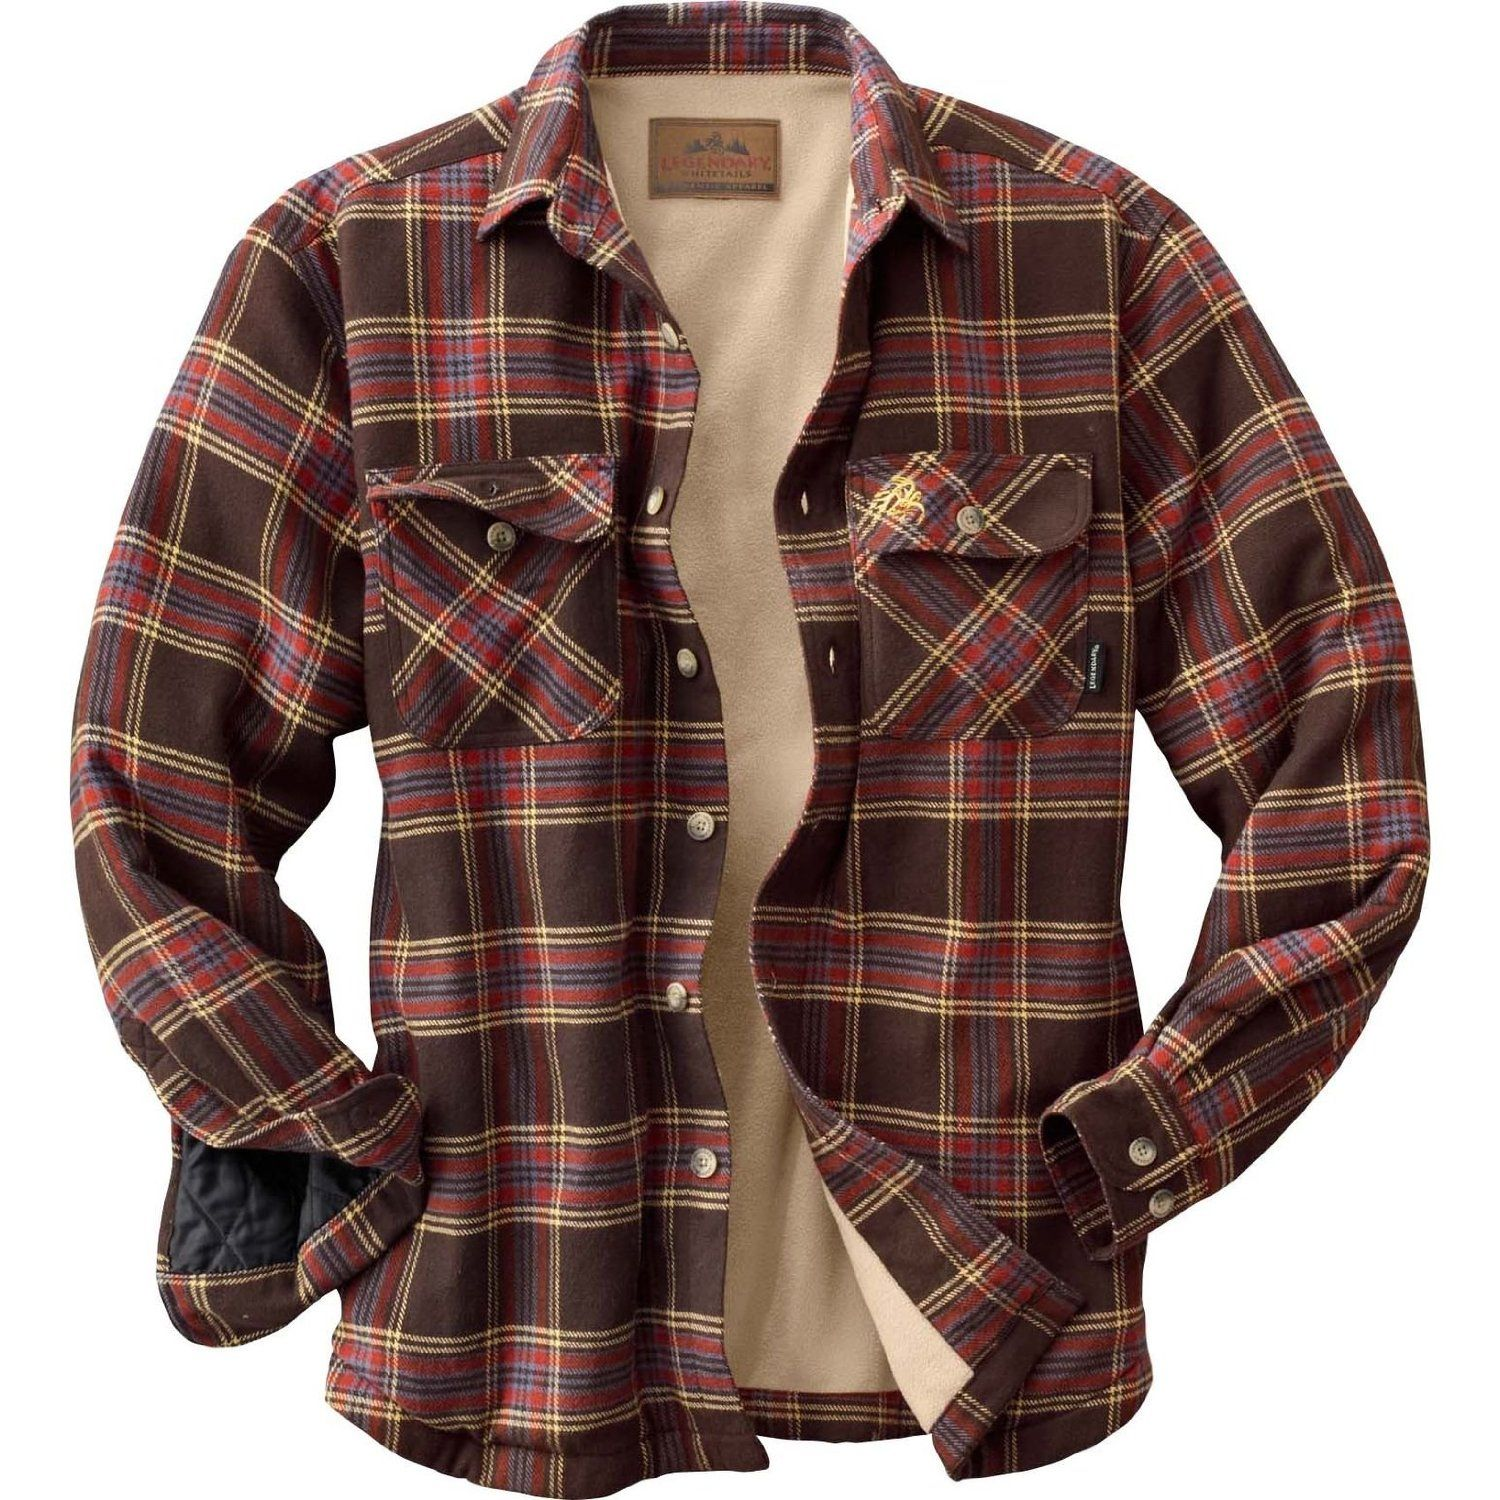 Quilted flannel shirt jacket  Amazon Legendary Whitetails Deer Camp Fleece Lined Shirt Jac